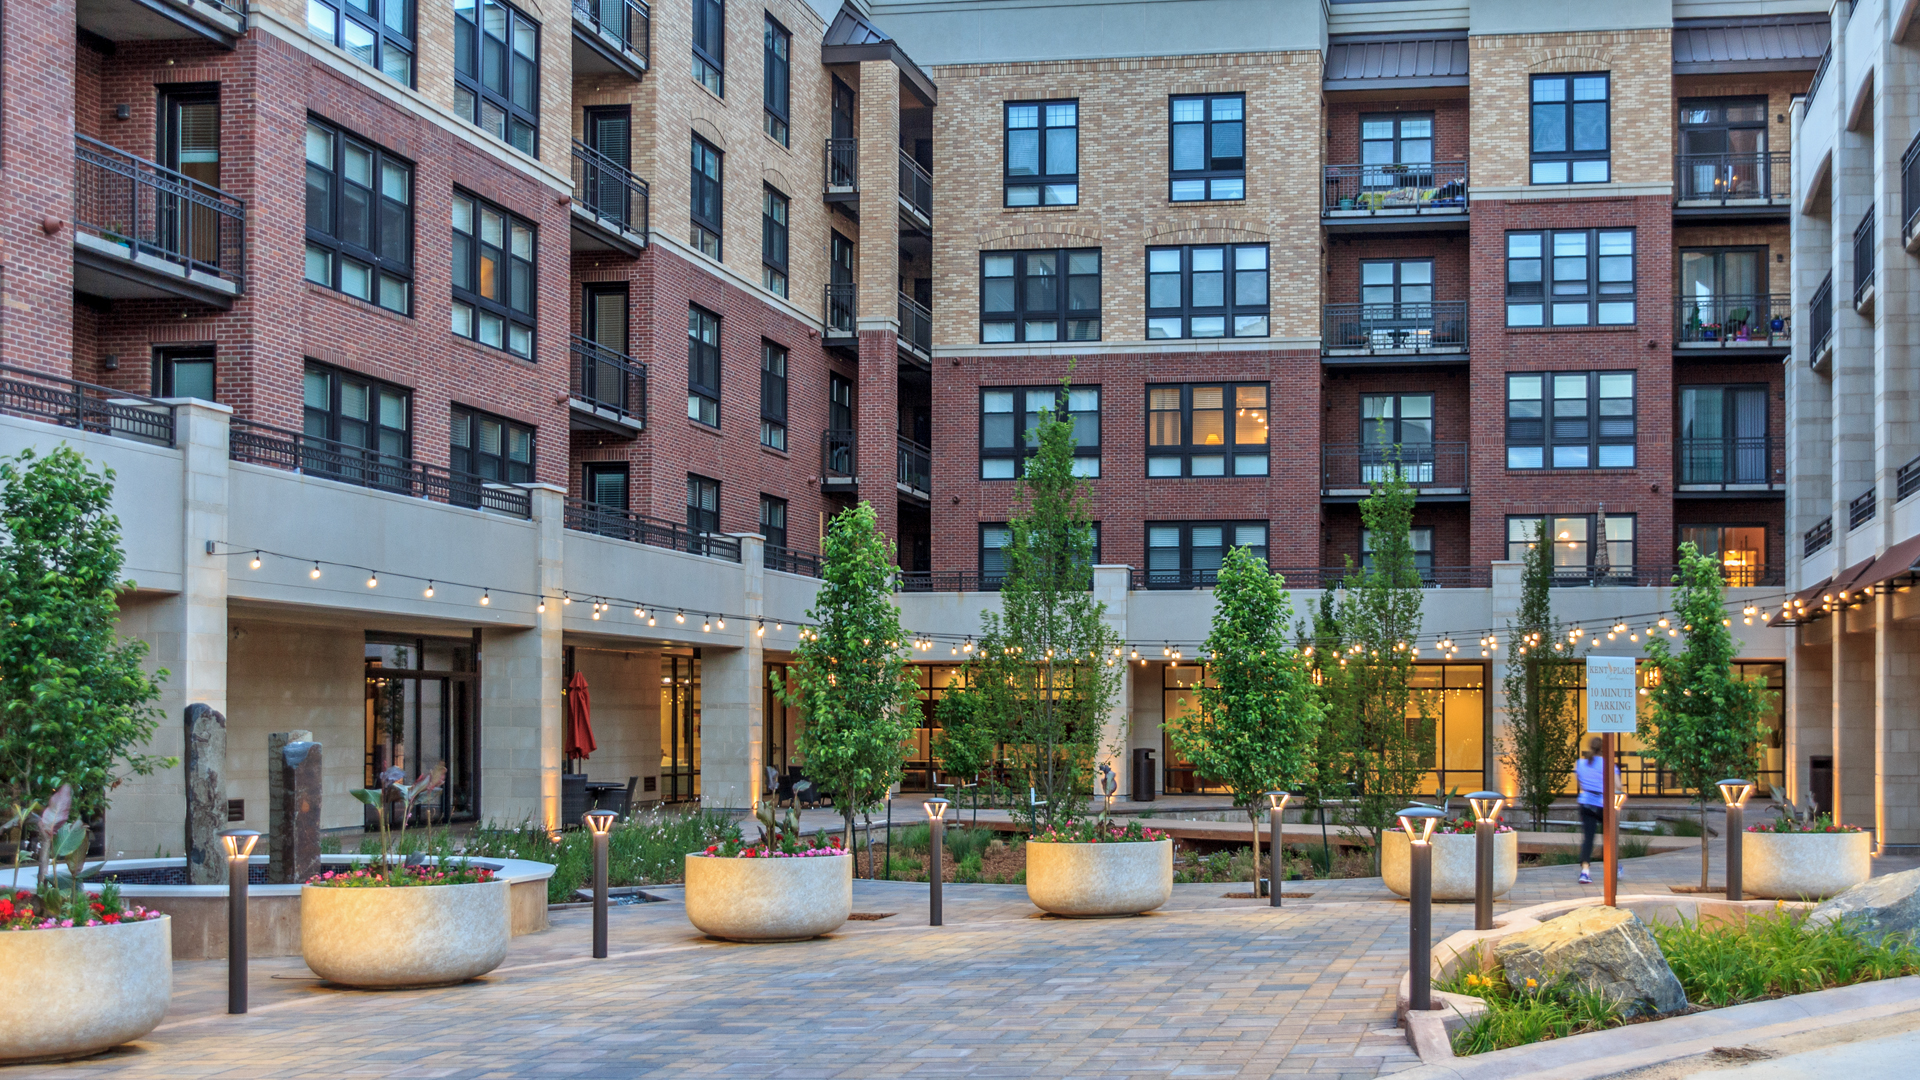 <p>The Residences at Kent Place offers village-style living with 300 luxury apartments and a wide choice of dining and shopping options on a 11.5-acre site.</p>